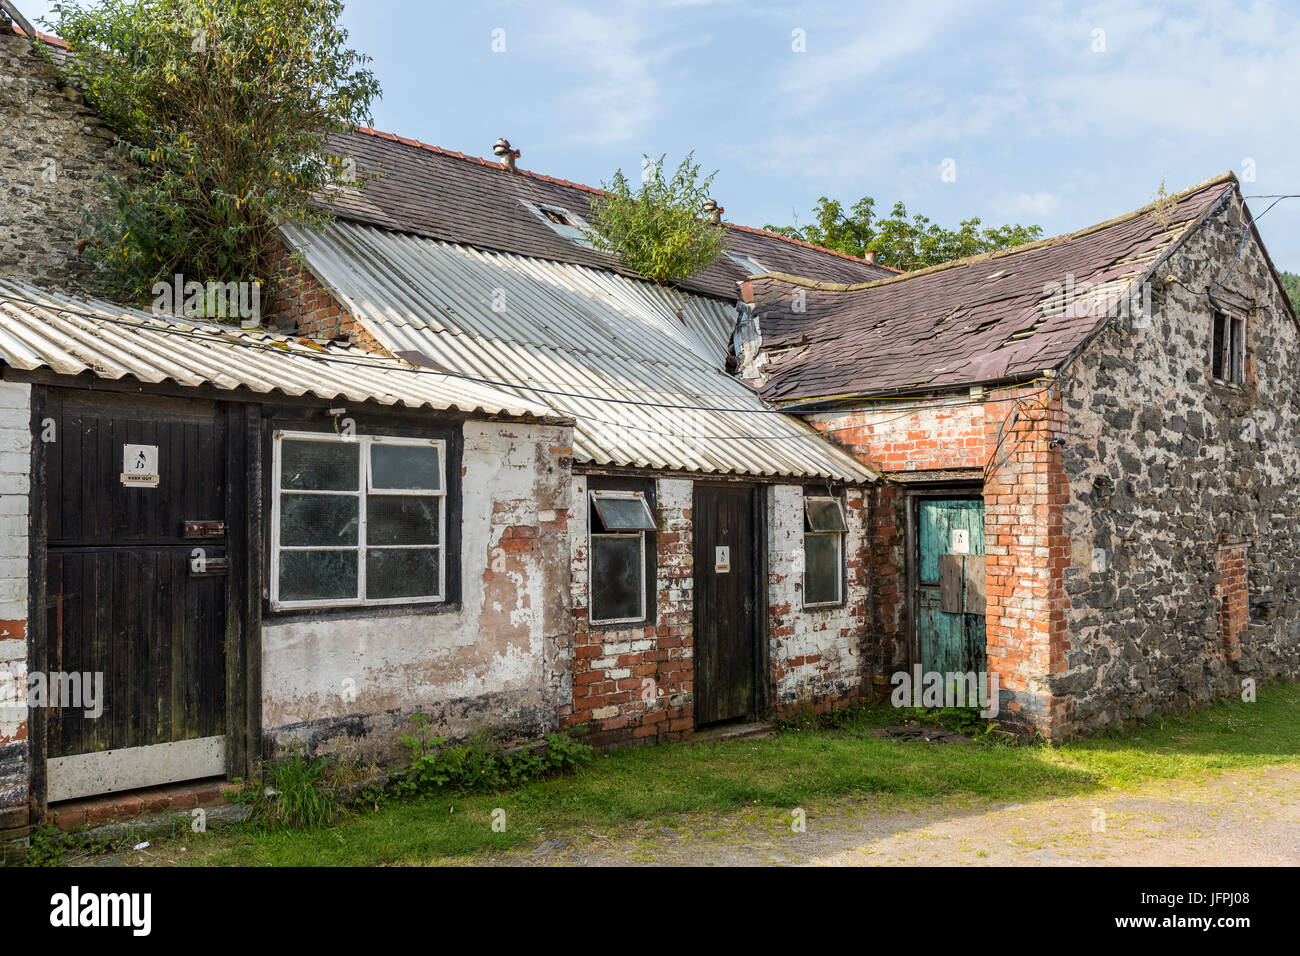 Derelict farm buildings with keep out signs, Tower Farm, Llangollen, Denbighshire, Wales - Stock Image